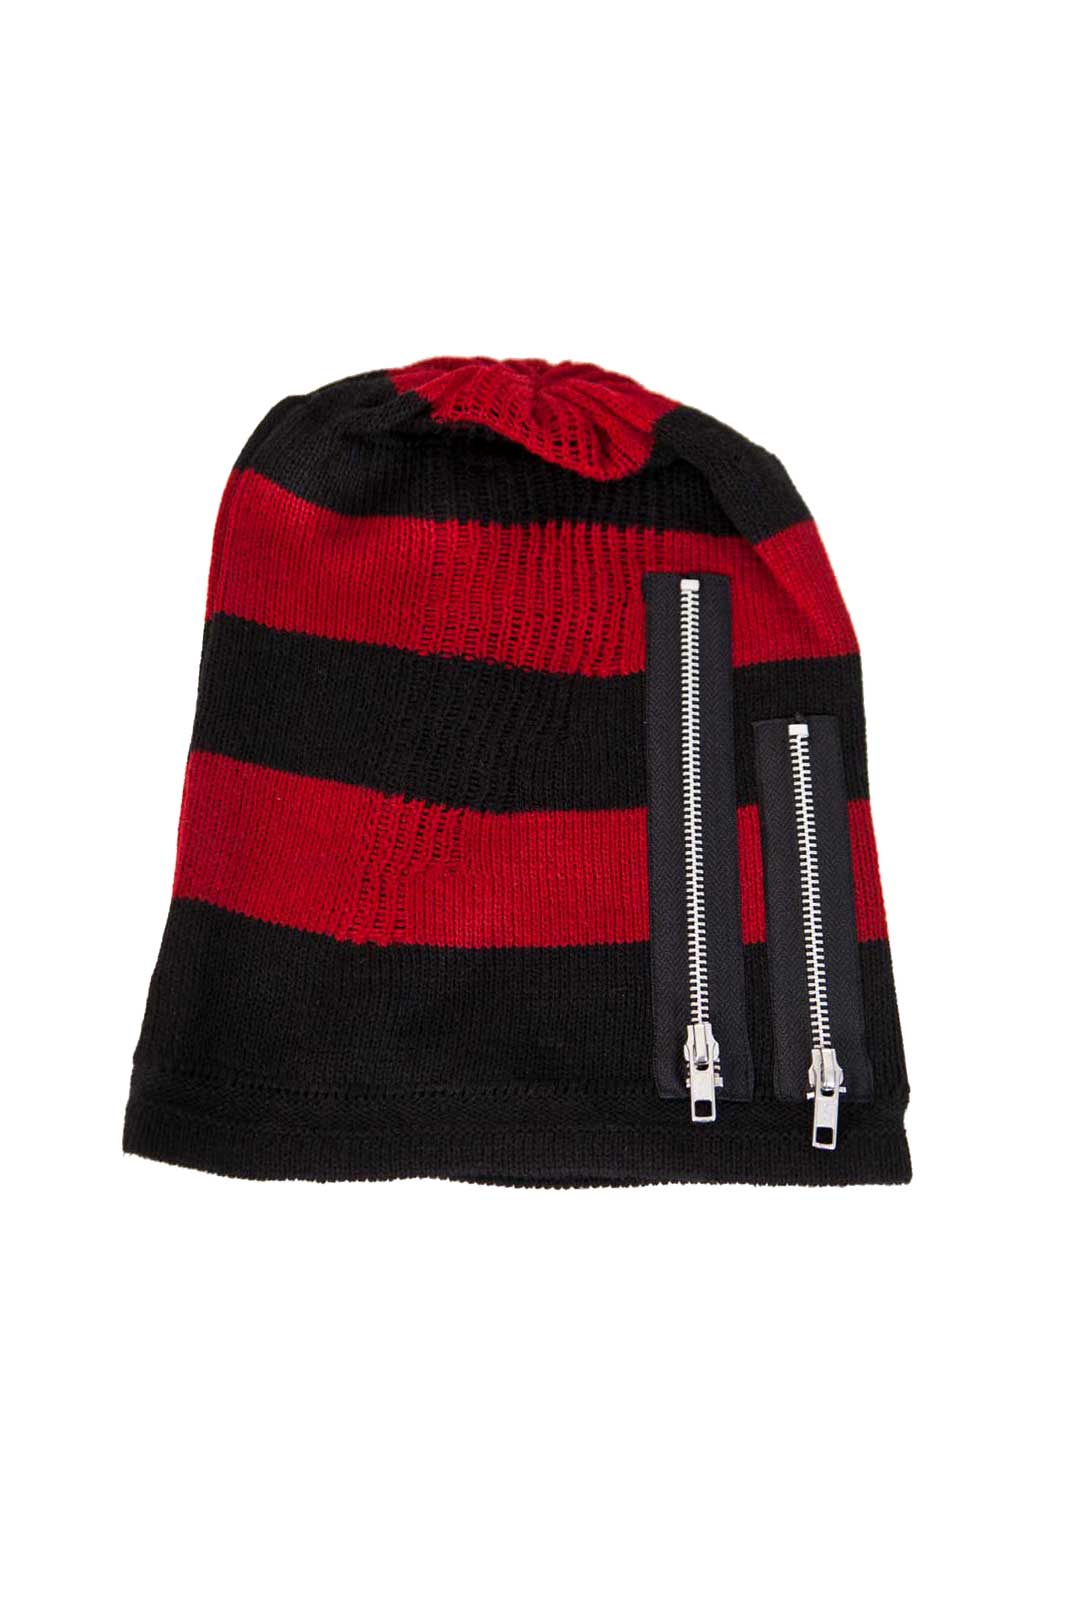 Krueger Hat Black & Red